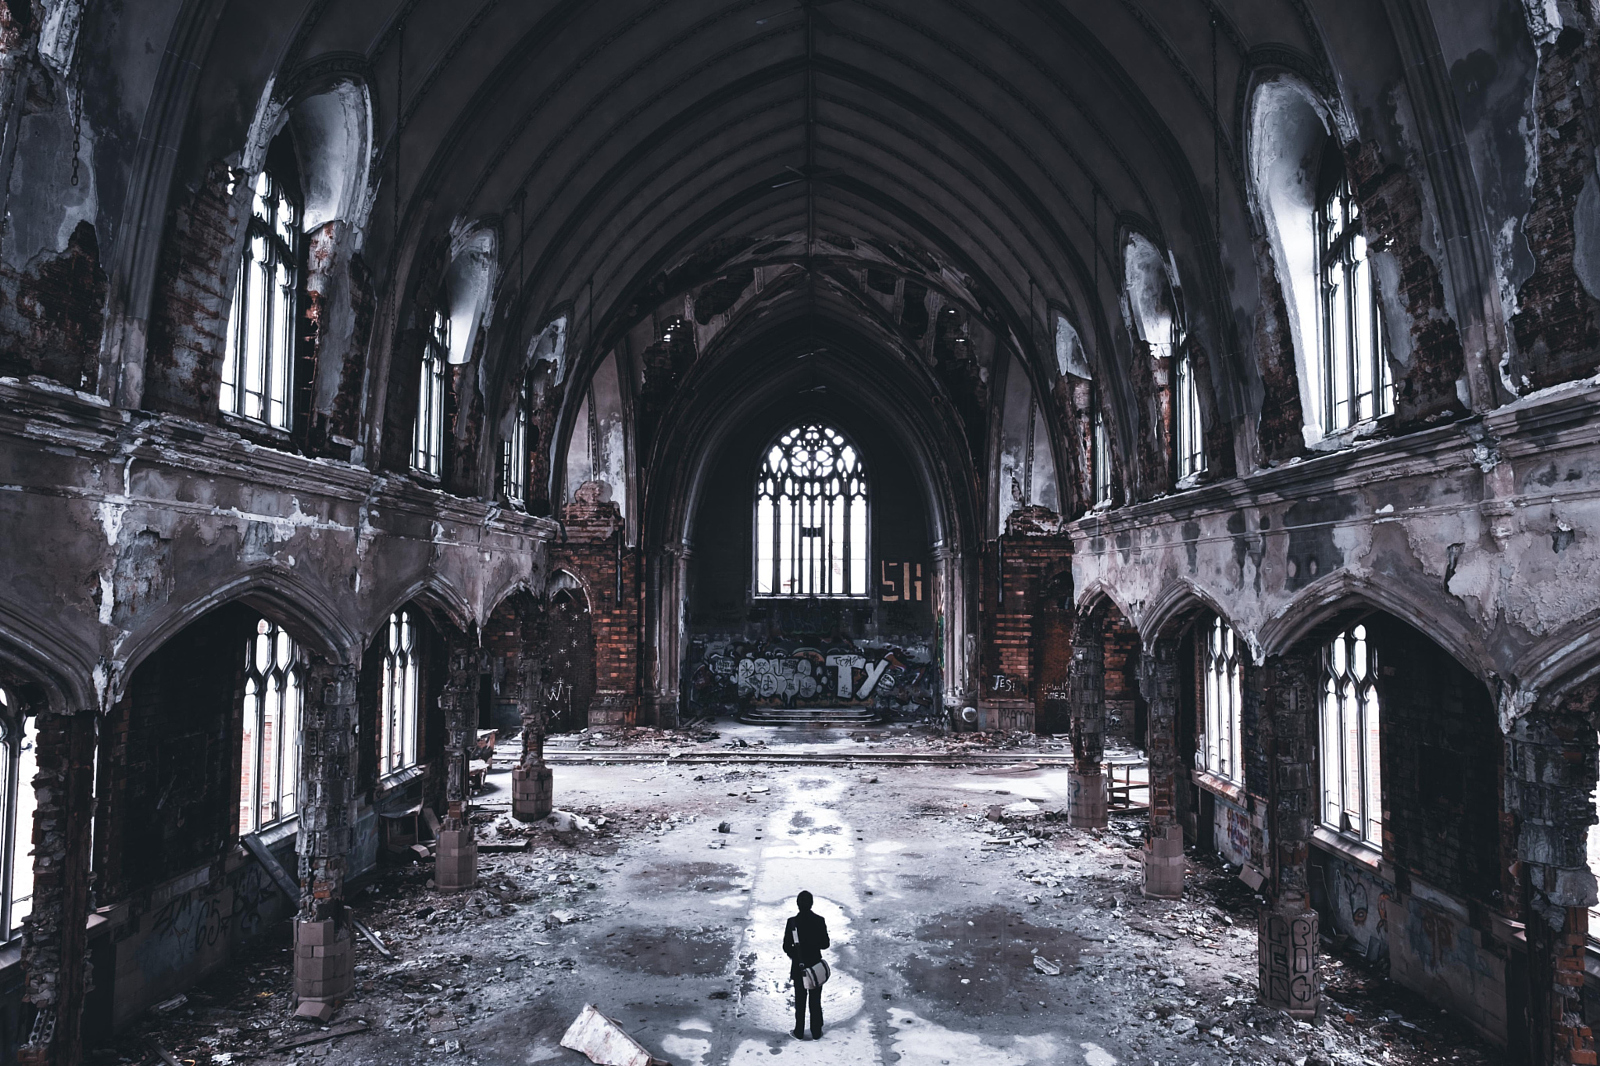 Top 20 Urban Exploration Photos on 500px So Far This Year